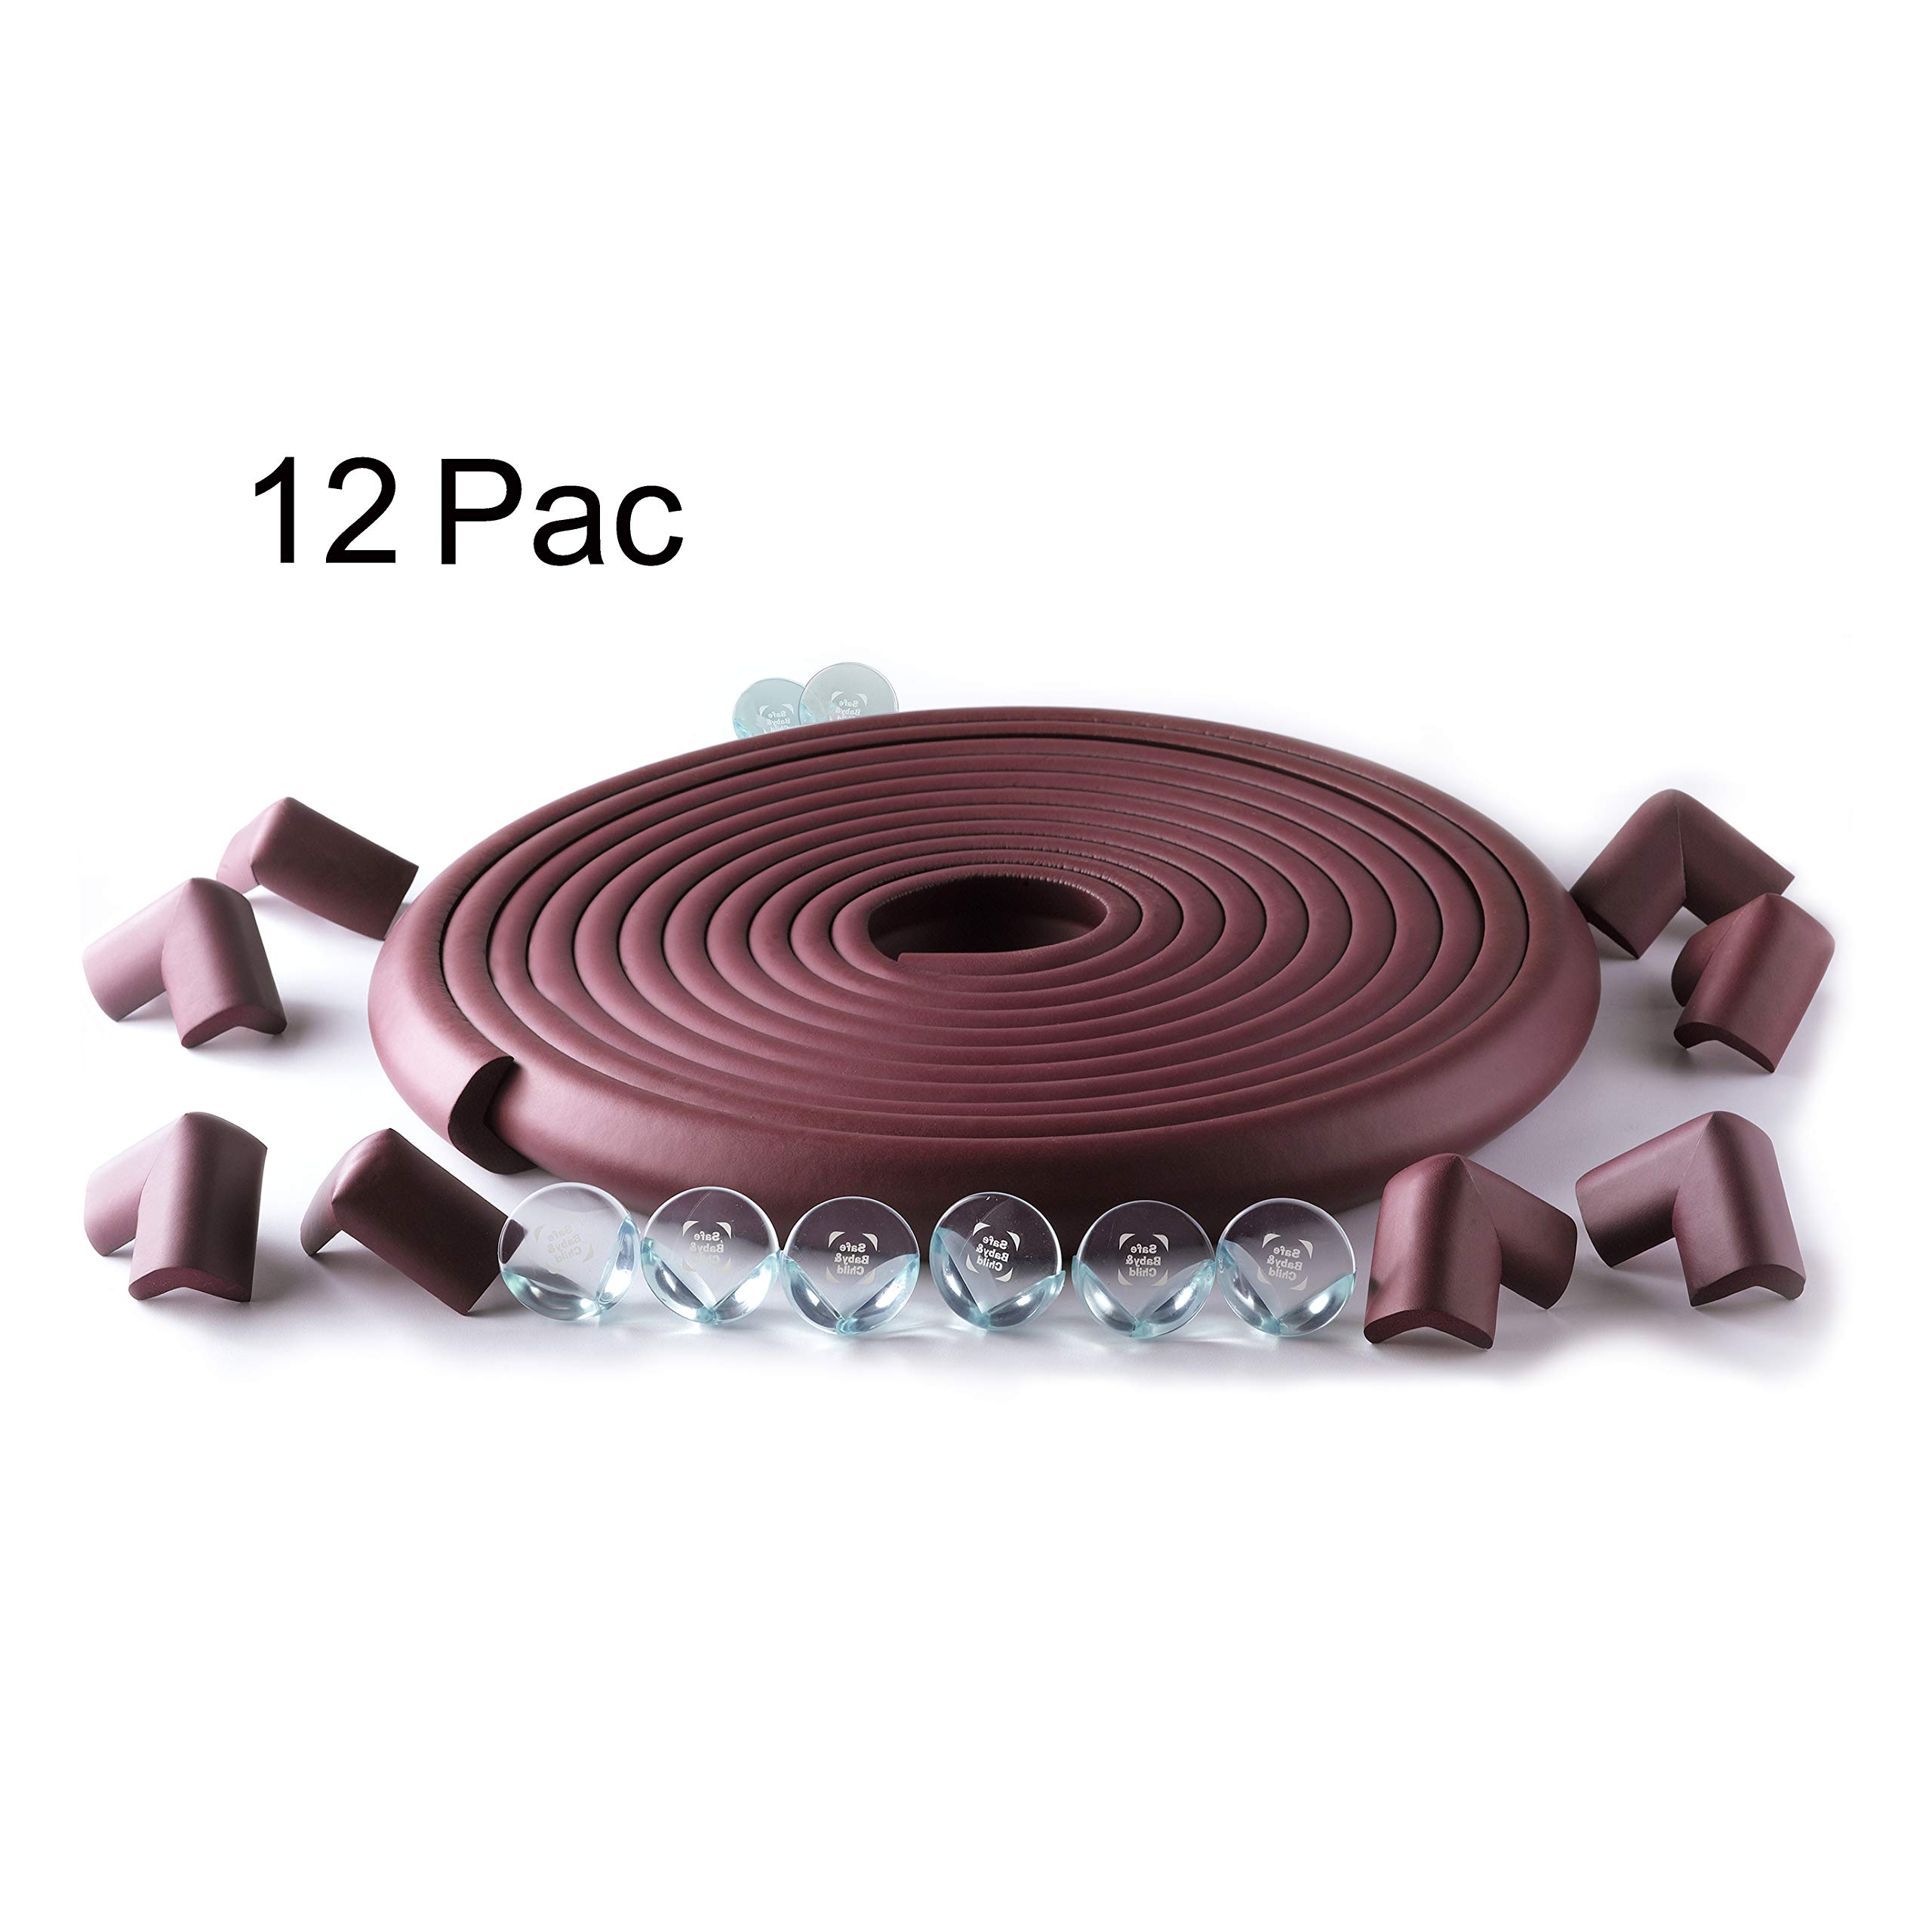 SafeBaby & Child Proofing 23.2ft Long Set -16 Corner Guards Baby proofing Edge with Clear Protective Bumpers for Furniture. Cushion Foam Strip Brick pad childproof Fireplace Guard for Toddlers. Brown